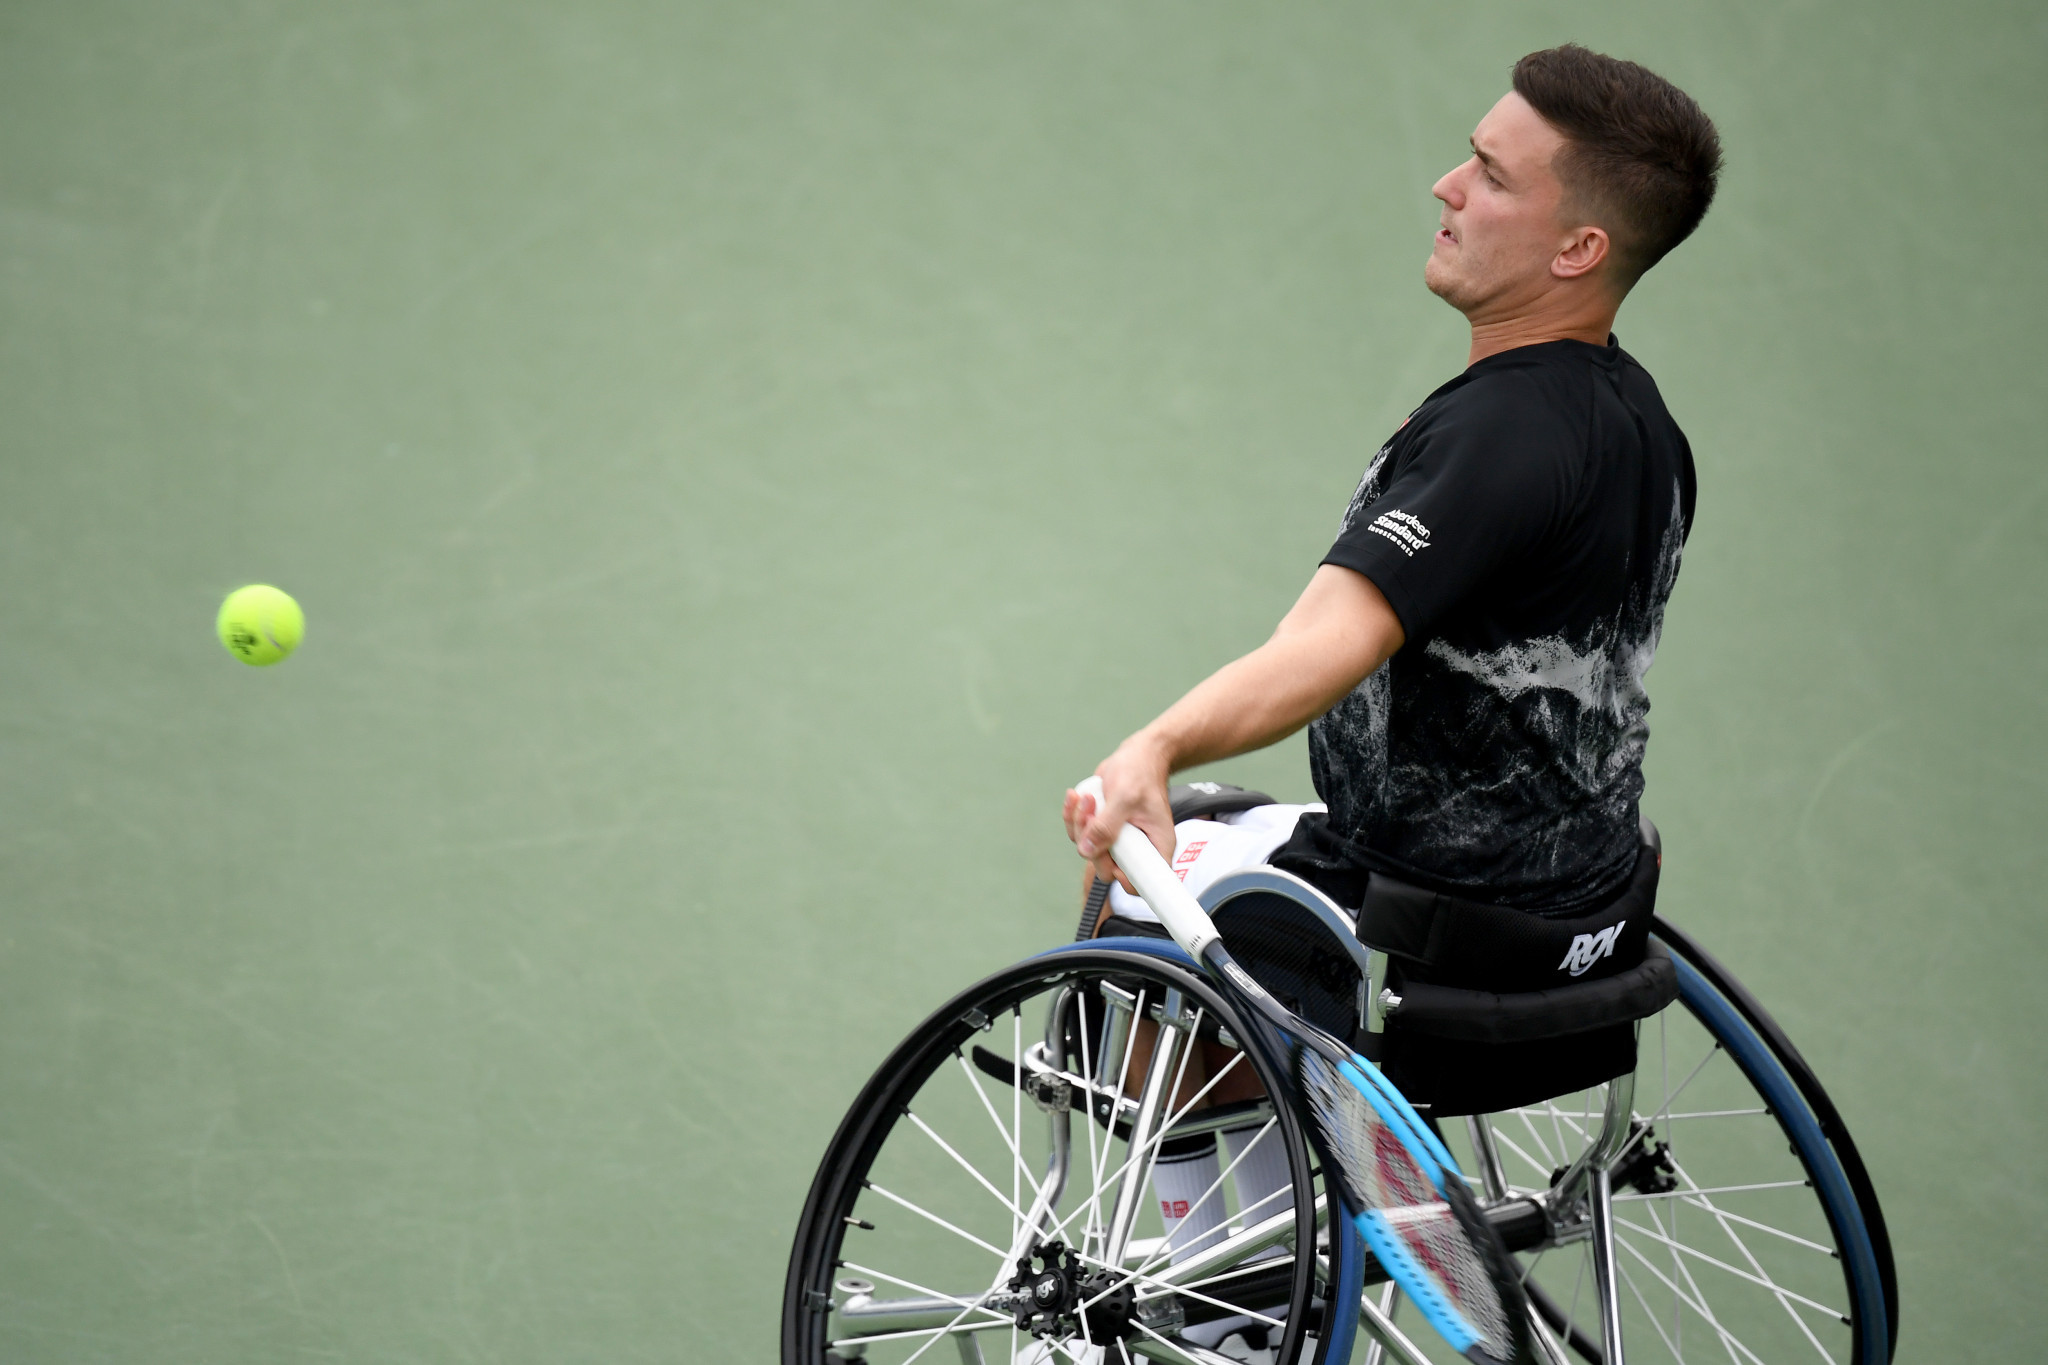 Britain's Alfie Hewett progressed to the men's singles and doubles finals ©Getty Images